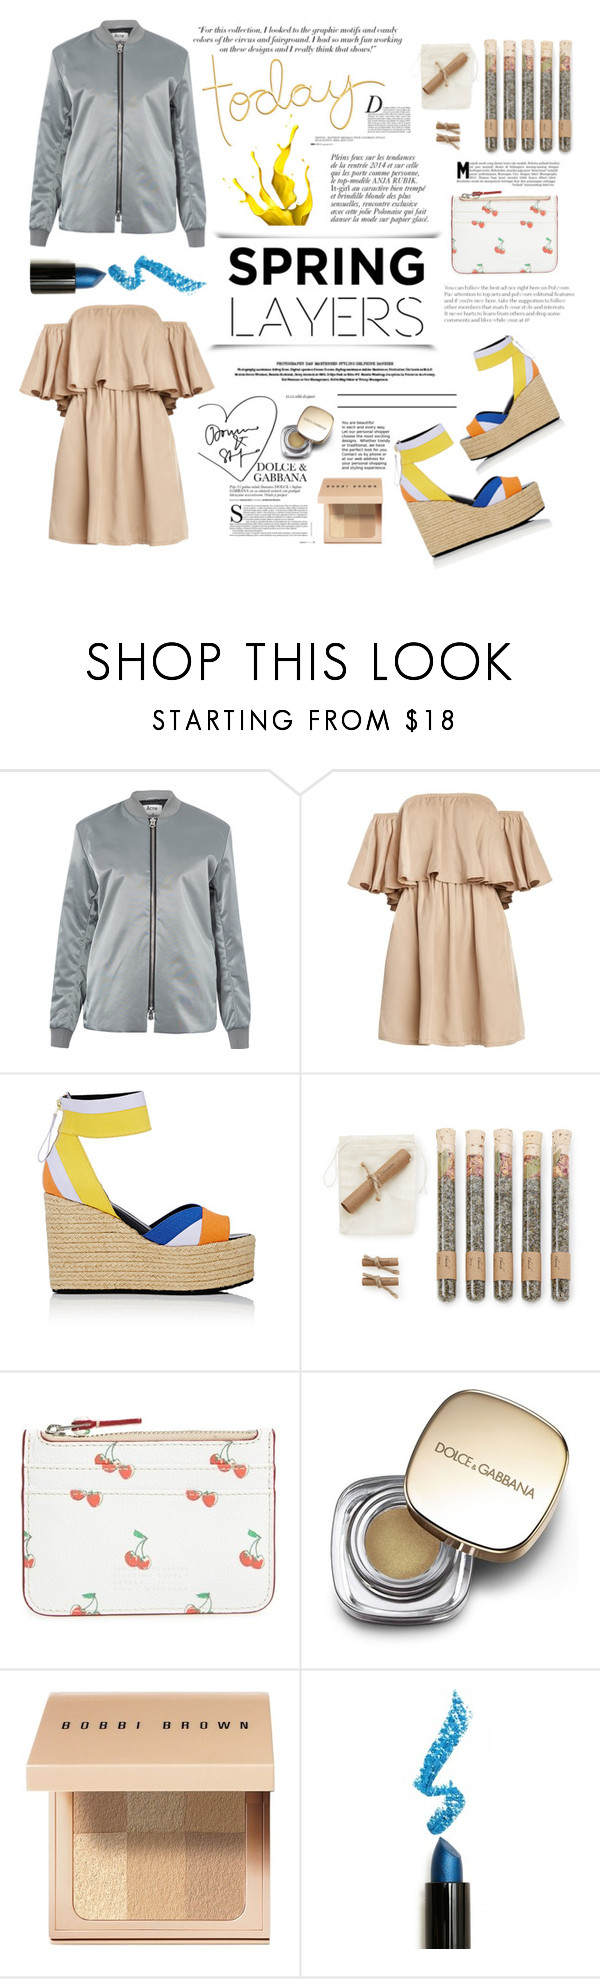 """""""wardrobe basics: spring jacket. <3"""" by tatjana ❤ liked on Polyvore featuring Acne Studios, Pierre Hardy, Anja, Truly Aesthetic, Marc by Marc Jacobs, Dolce&Gabbana, Bobbi Brown Cosmetics, Lime Crime and Victoria Beckham"""